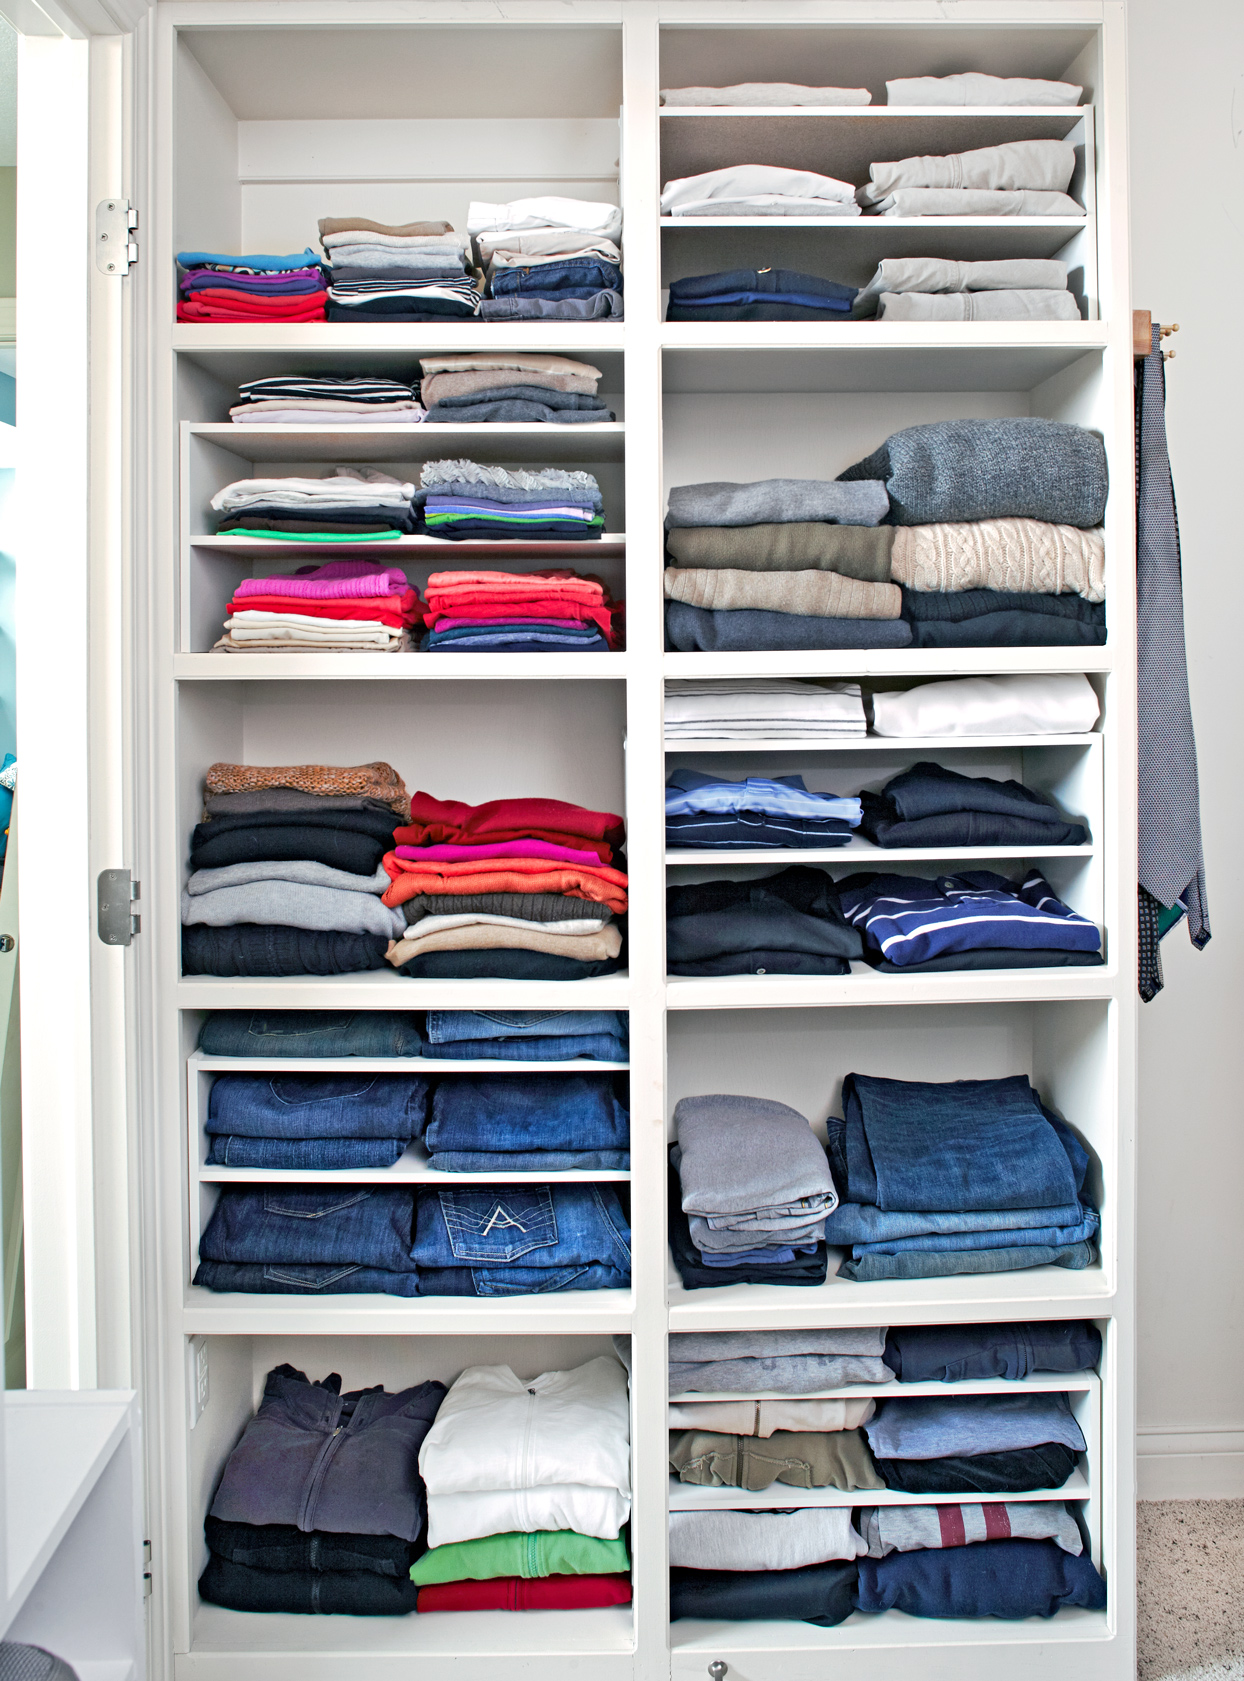 white shelving unit filled with folded clothes